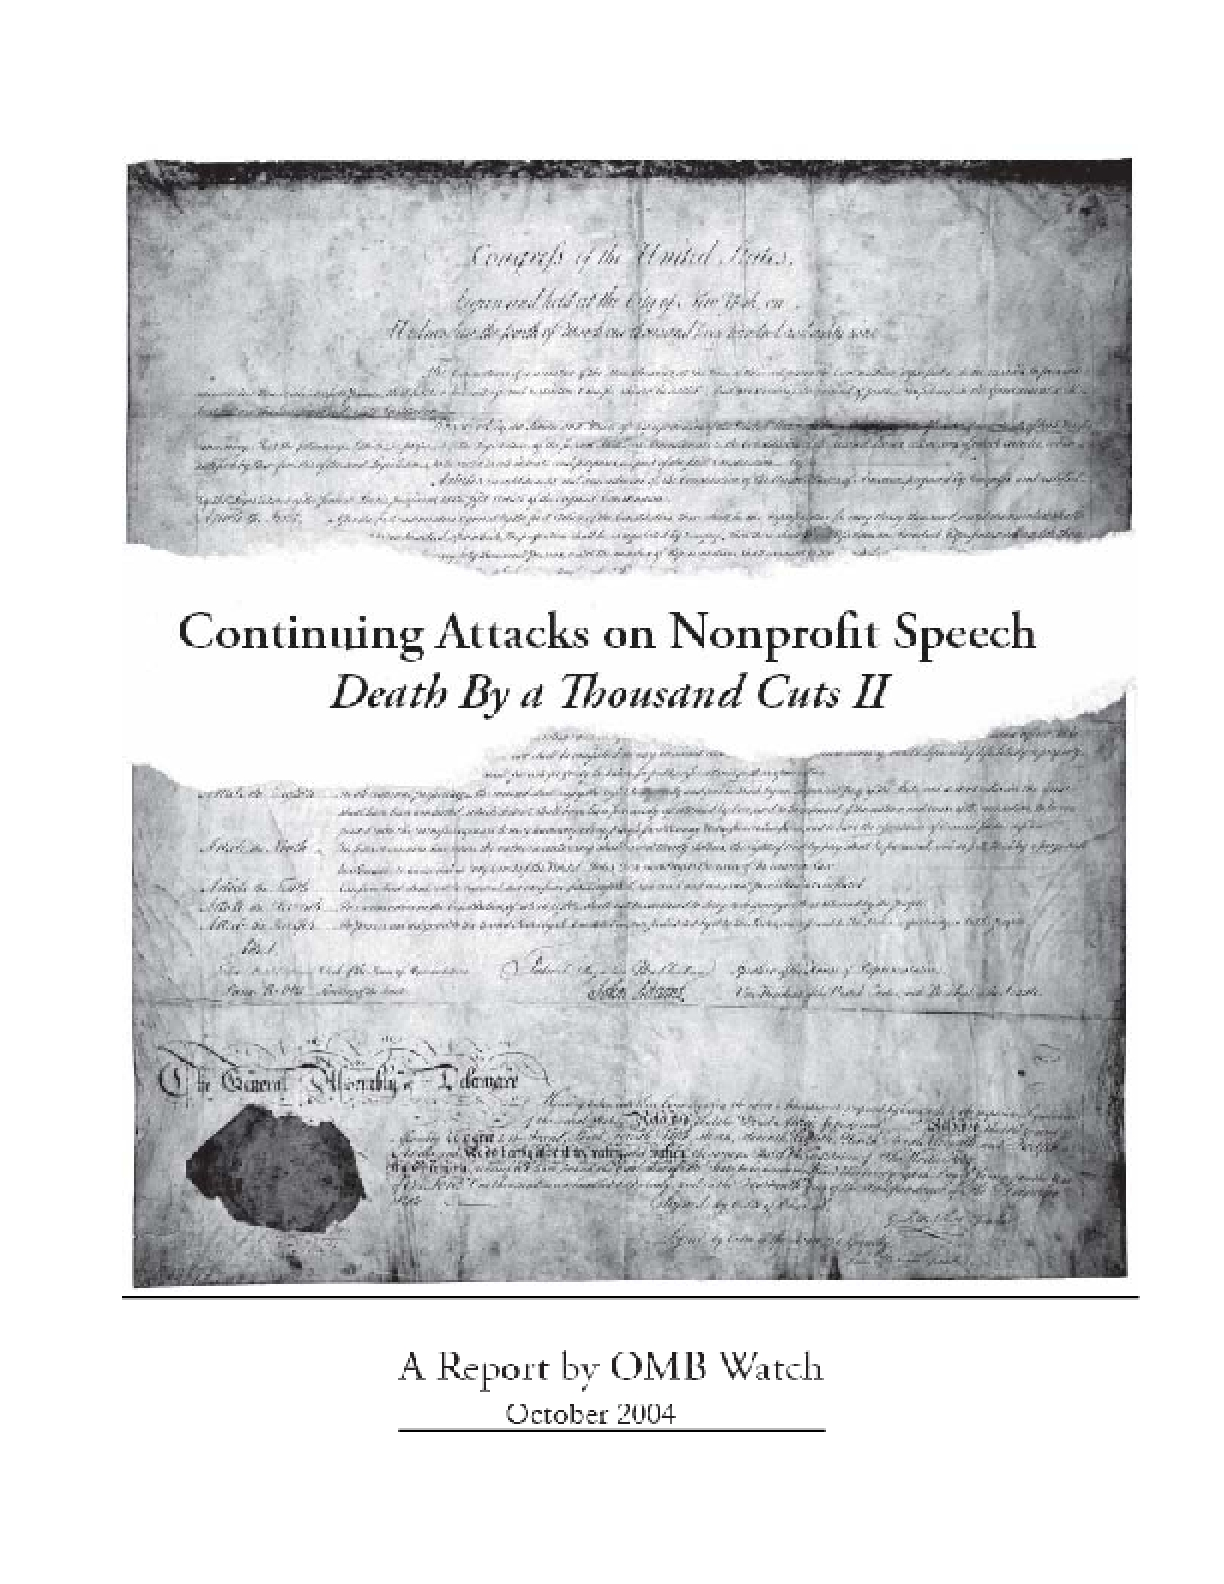 Continuing Attacks on Nonprofit Speech: Death by a Thousand Cuts II